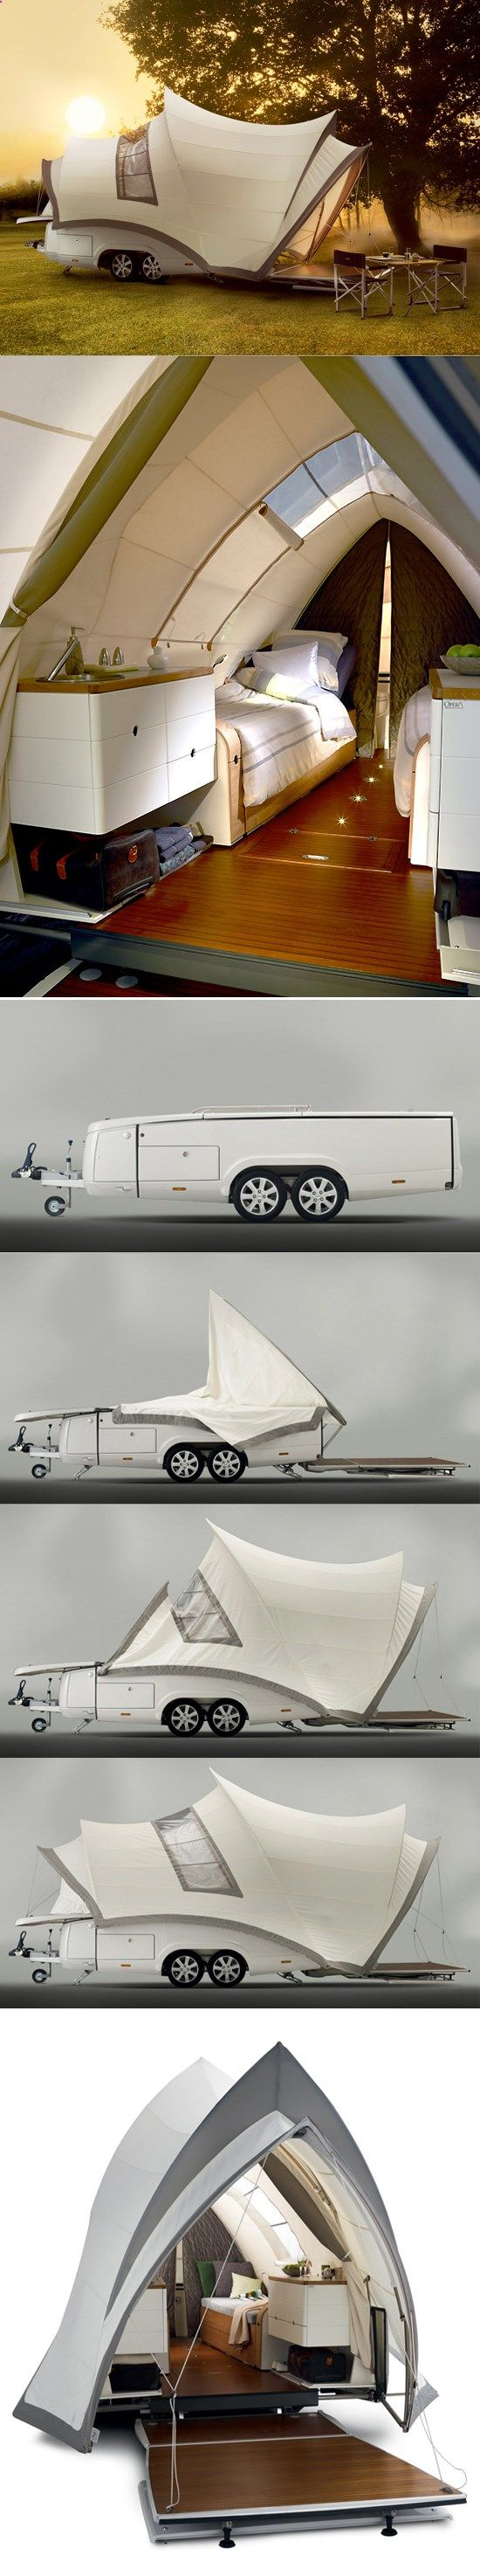 Camping Tents - The Opera pop up camper. I normally just pack out, but this could be a fun change of pace. Luxury camping?